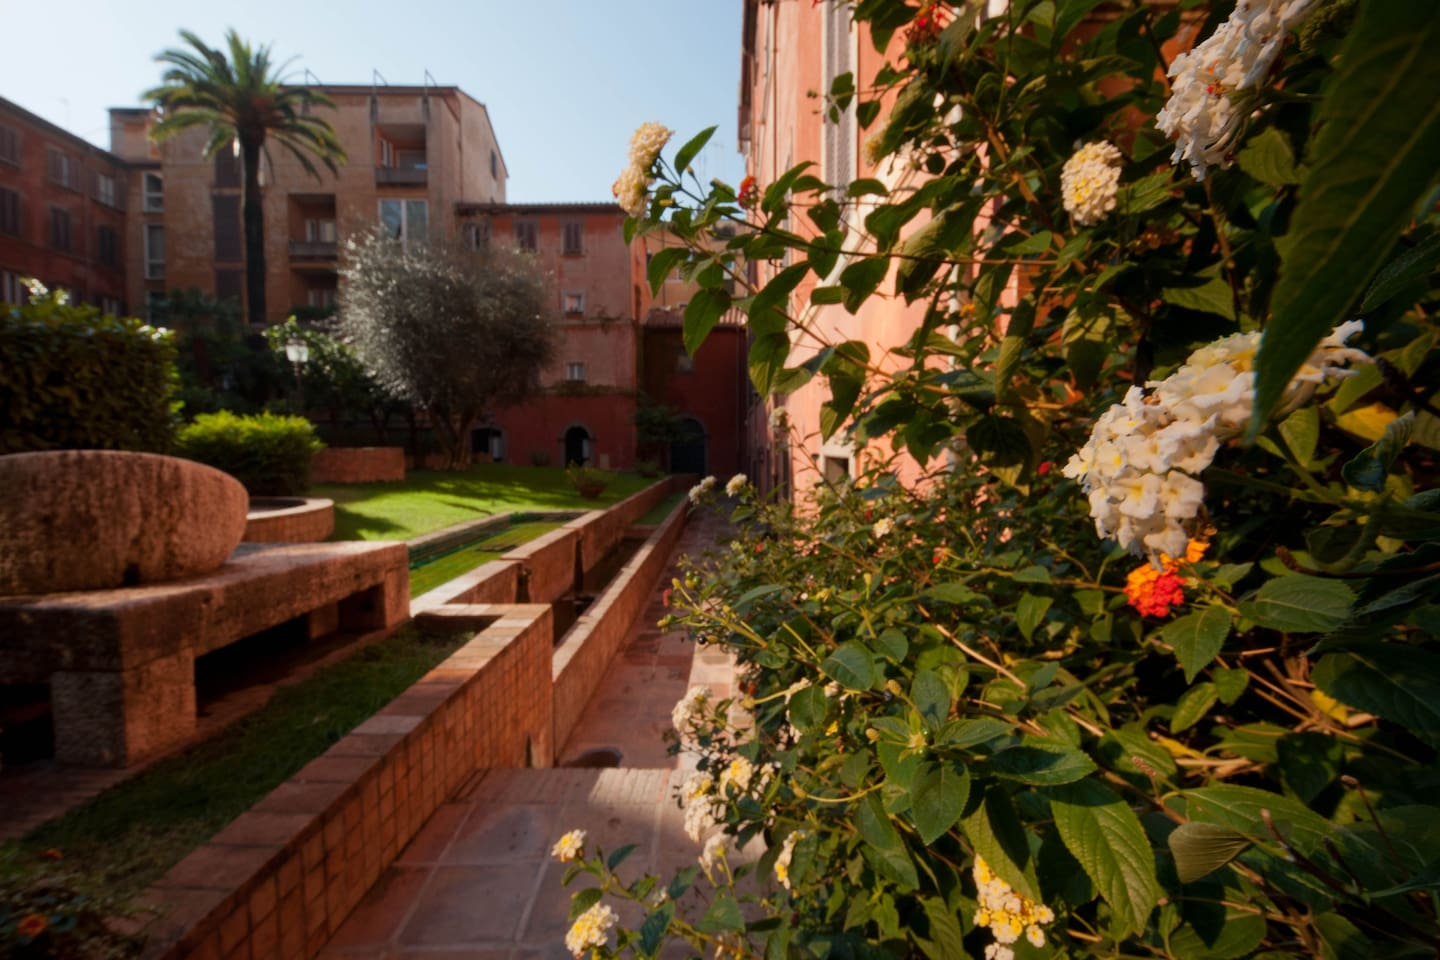 CASA TREVI GARDEN N. 1 - Apartments for Rent in Rome, Italy